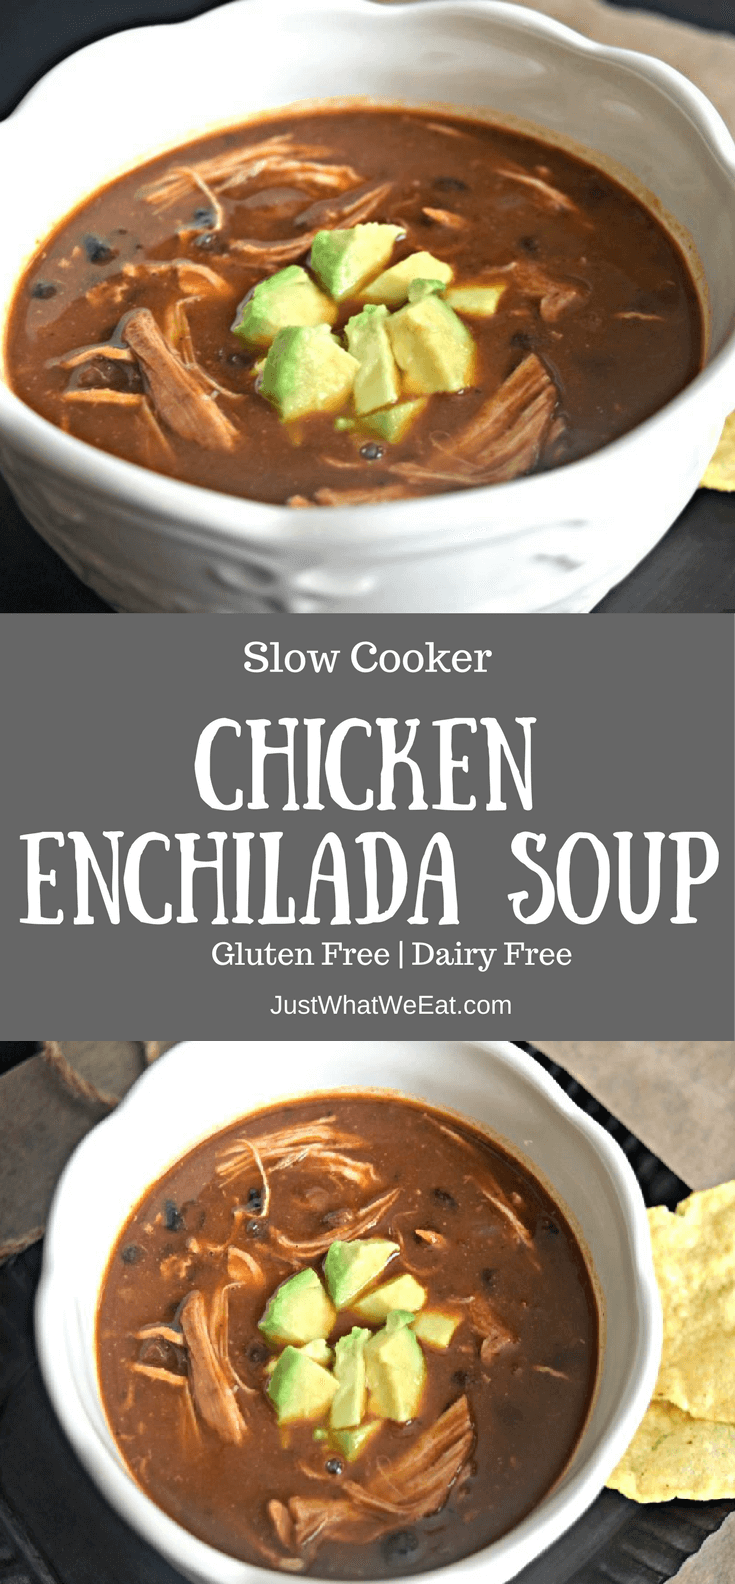 Slow Cooker Chicken Enchilada Soup - Gluten Free Dairy Free